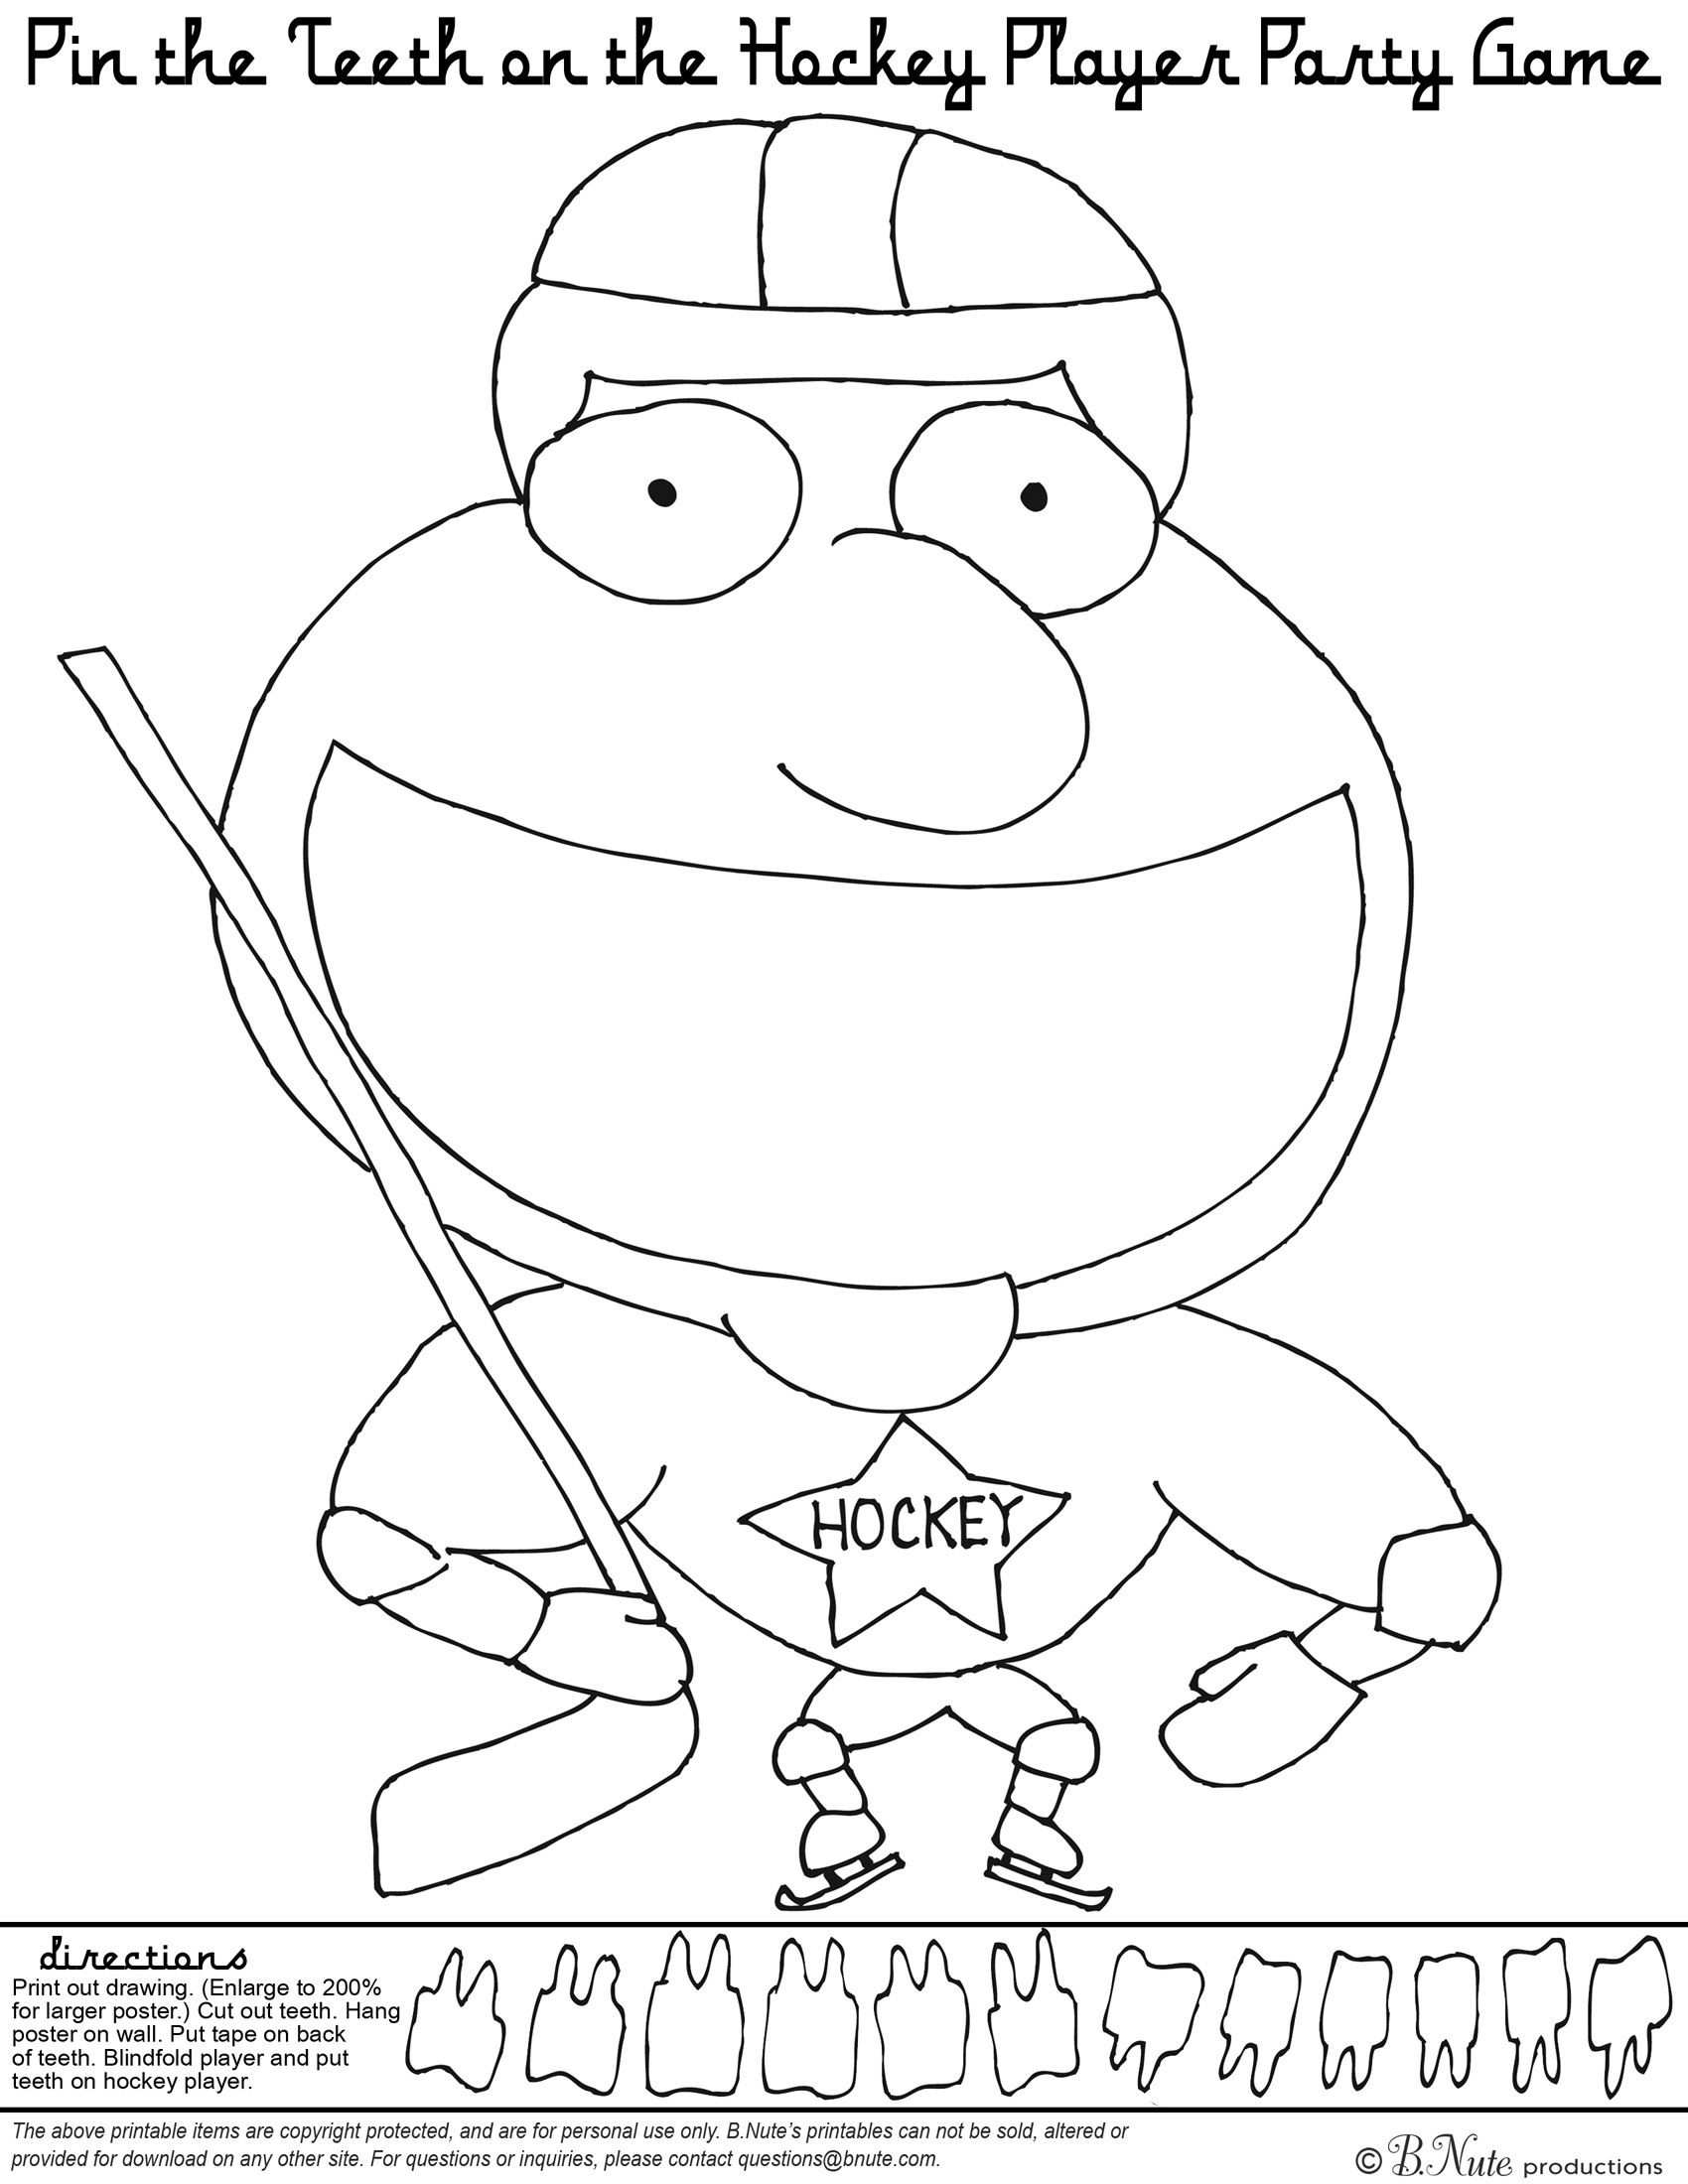 bnute productions free printable hockey party game and coloring page